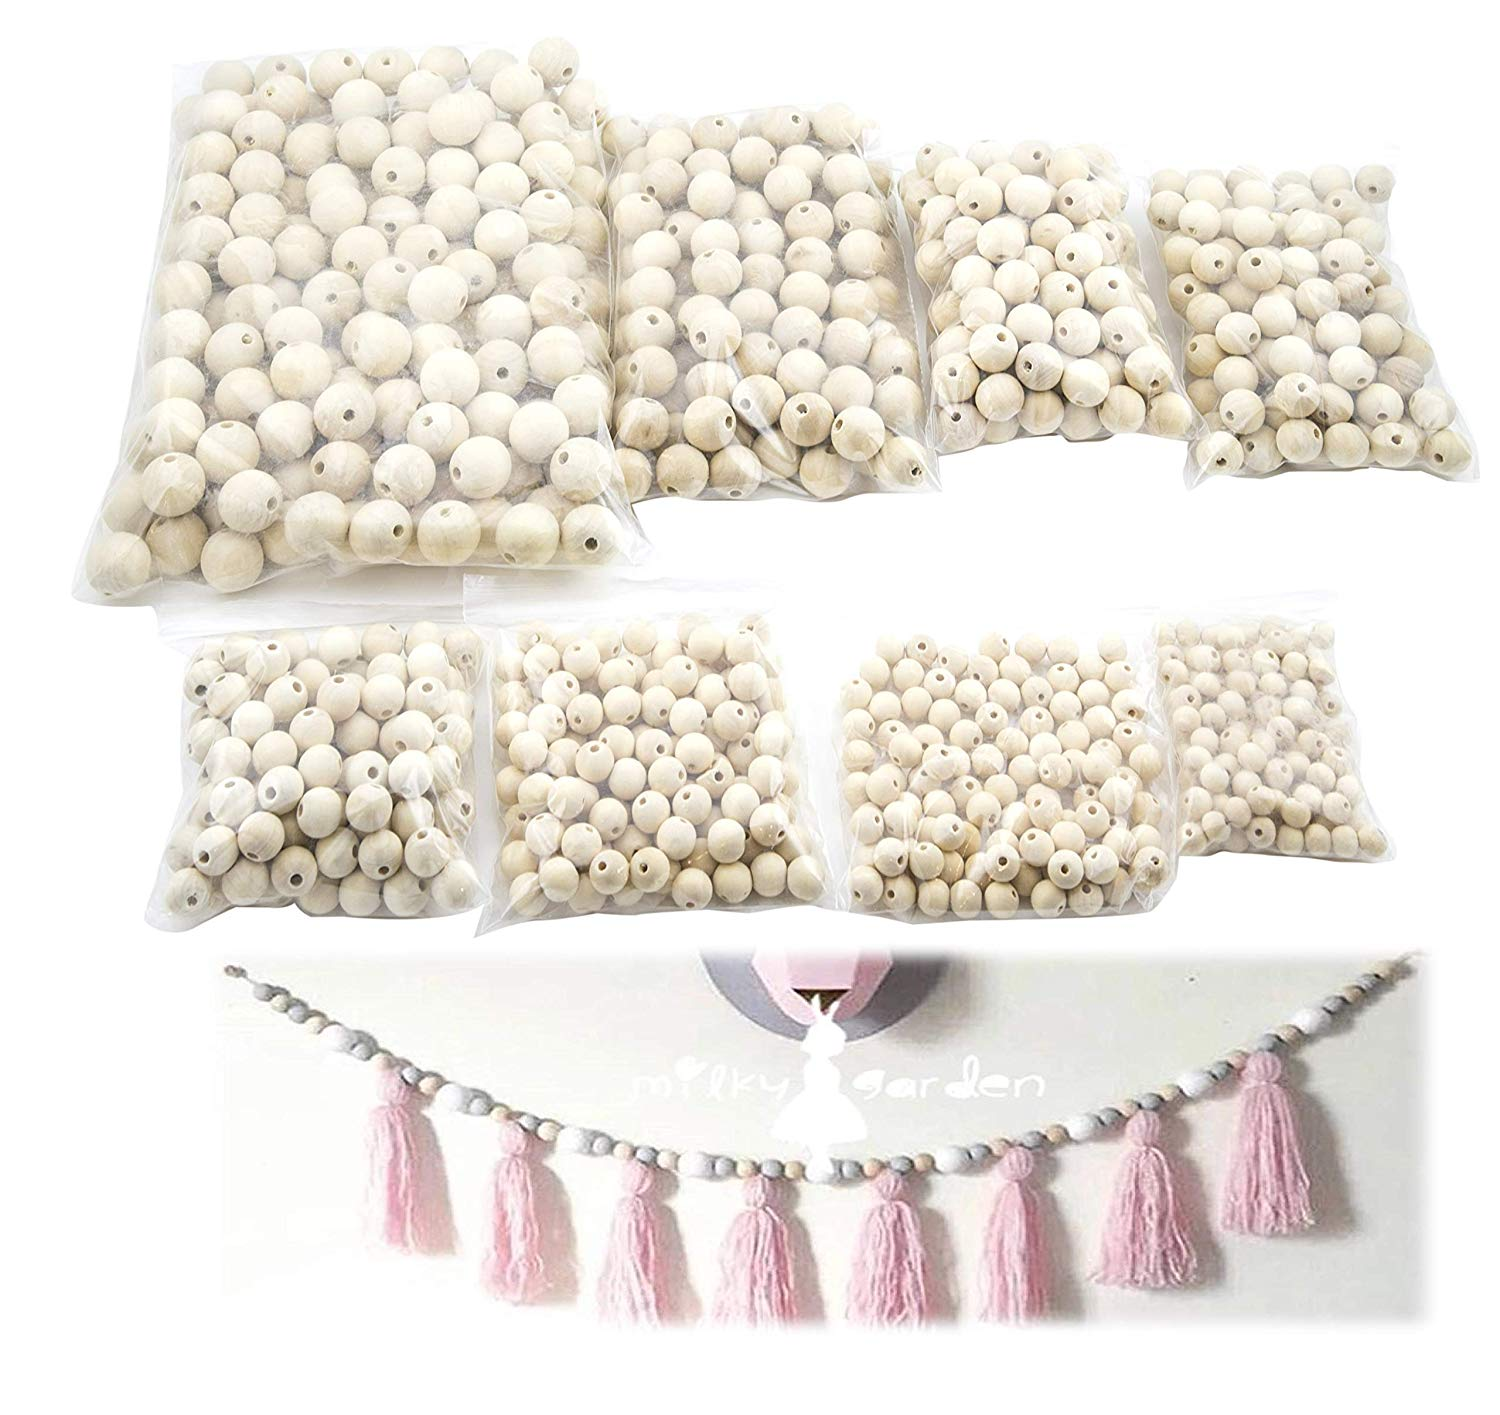 JJMG Round Wooded Bead Kit